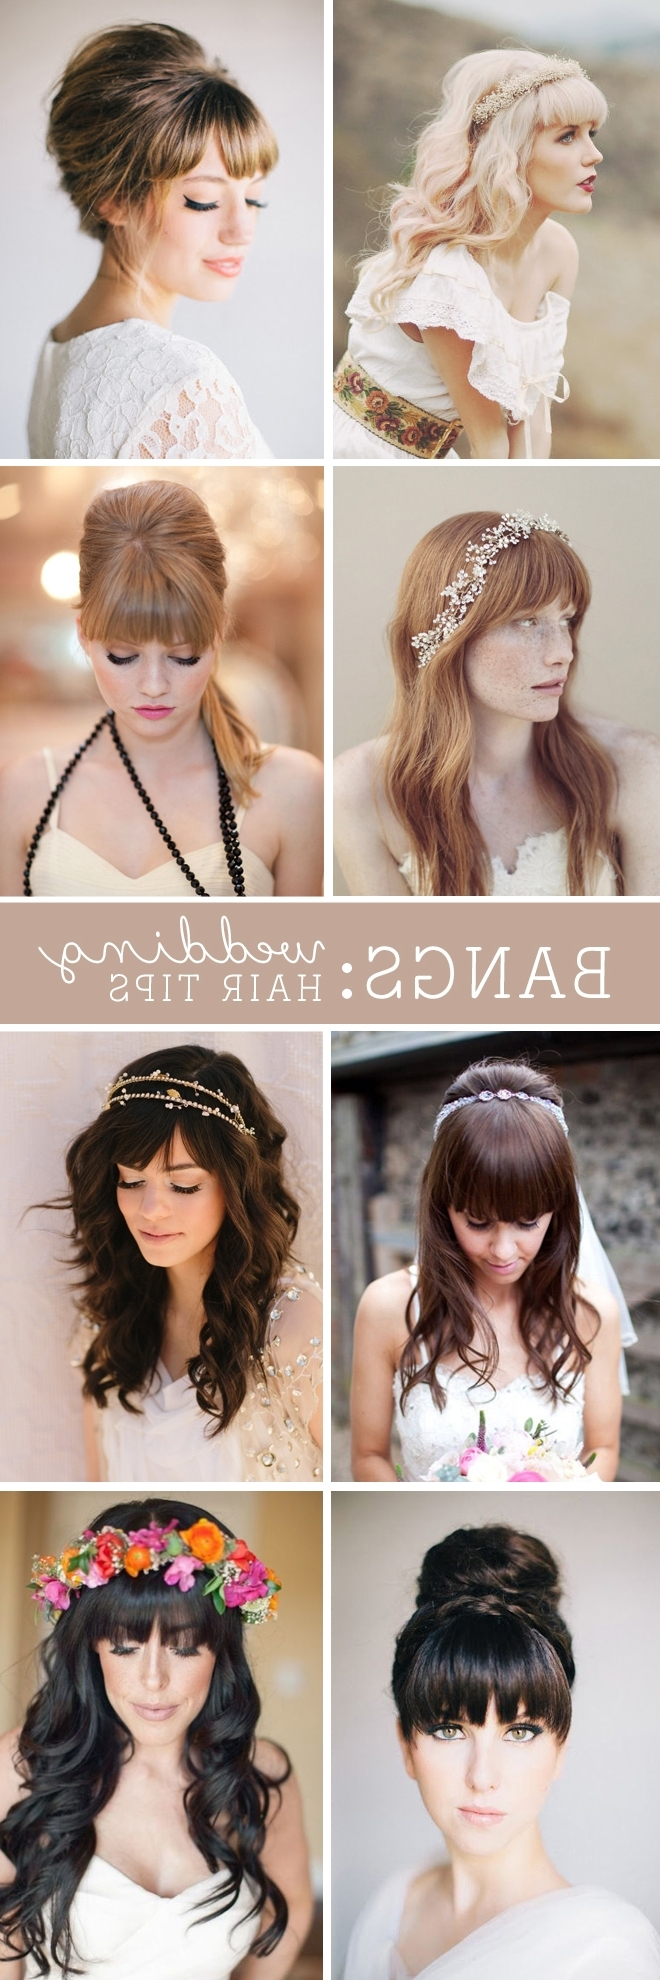 2018 Wedding Hairstyles For Long Hair With Bangs Pertaining To Must Read Tips For Wedding Hairstyles With Full Fringe (bangs)! (View 2 of 15)